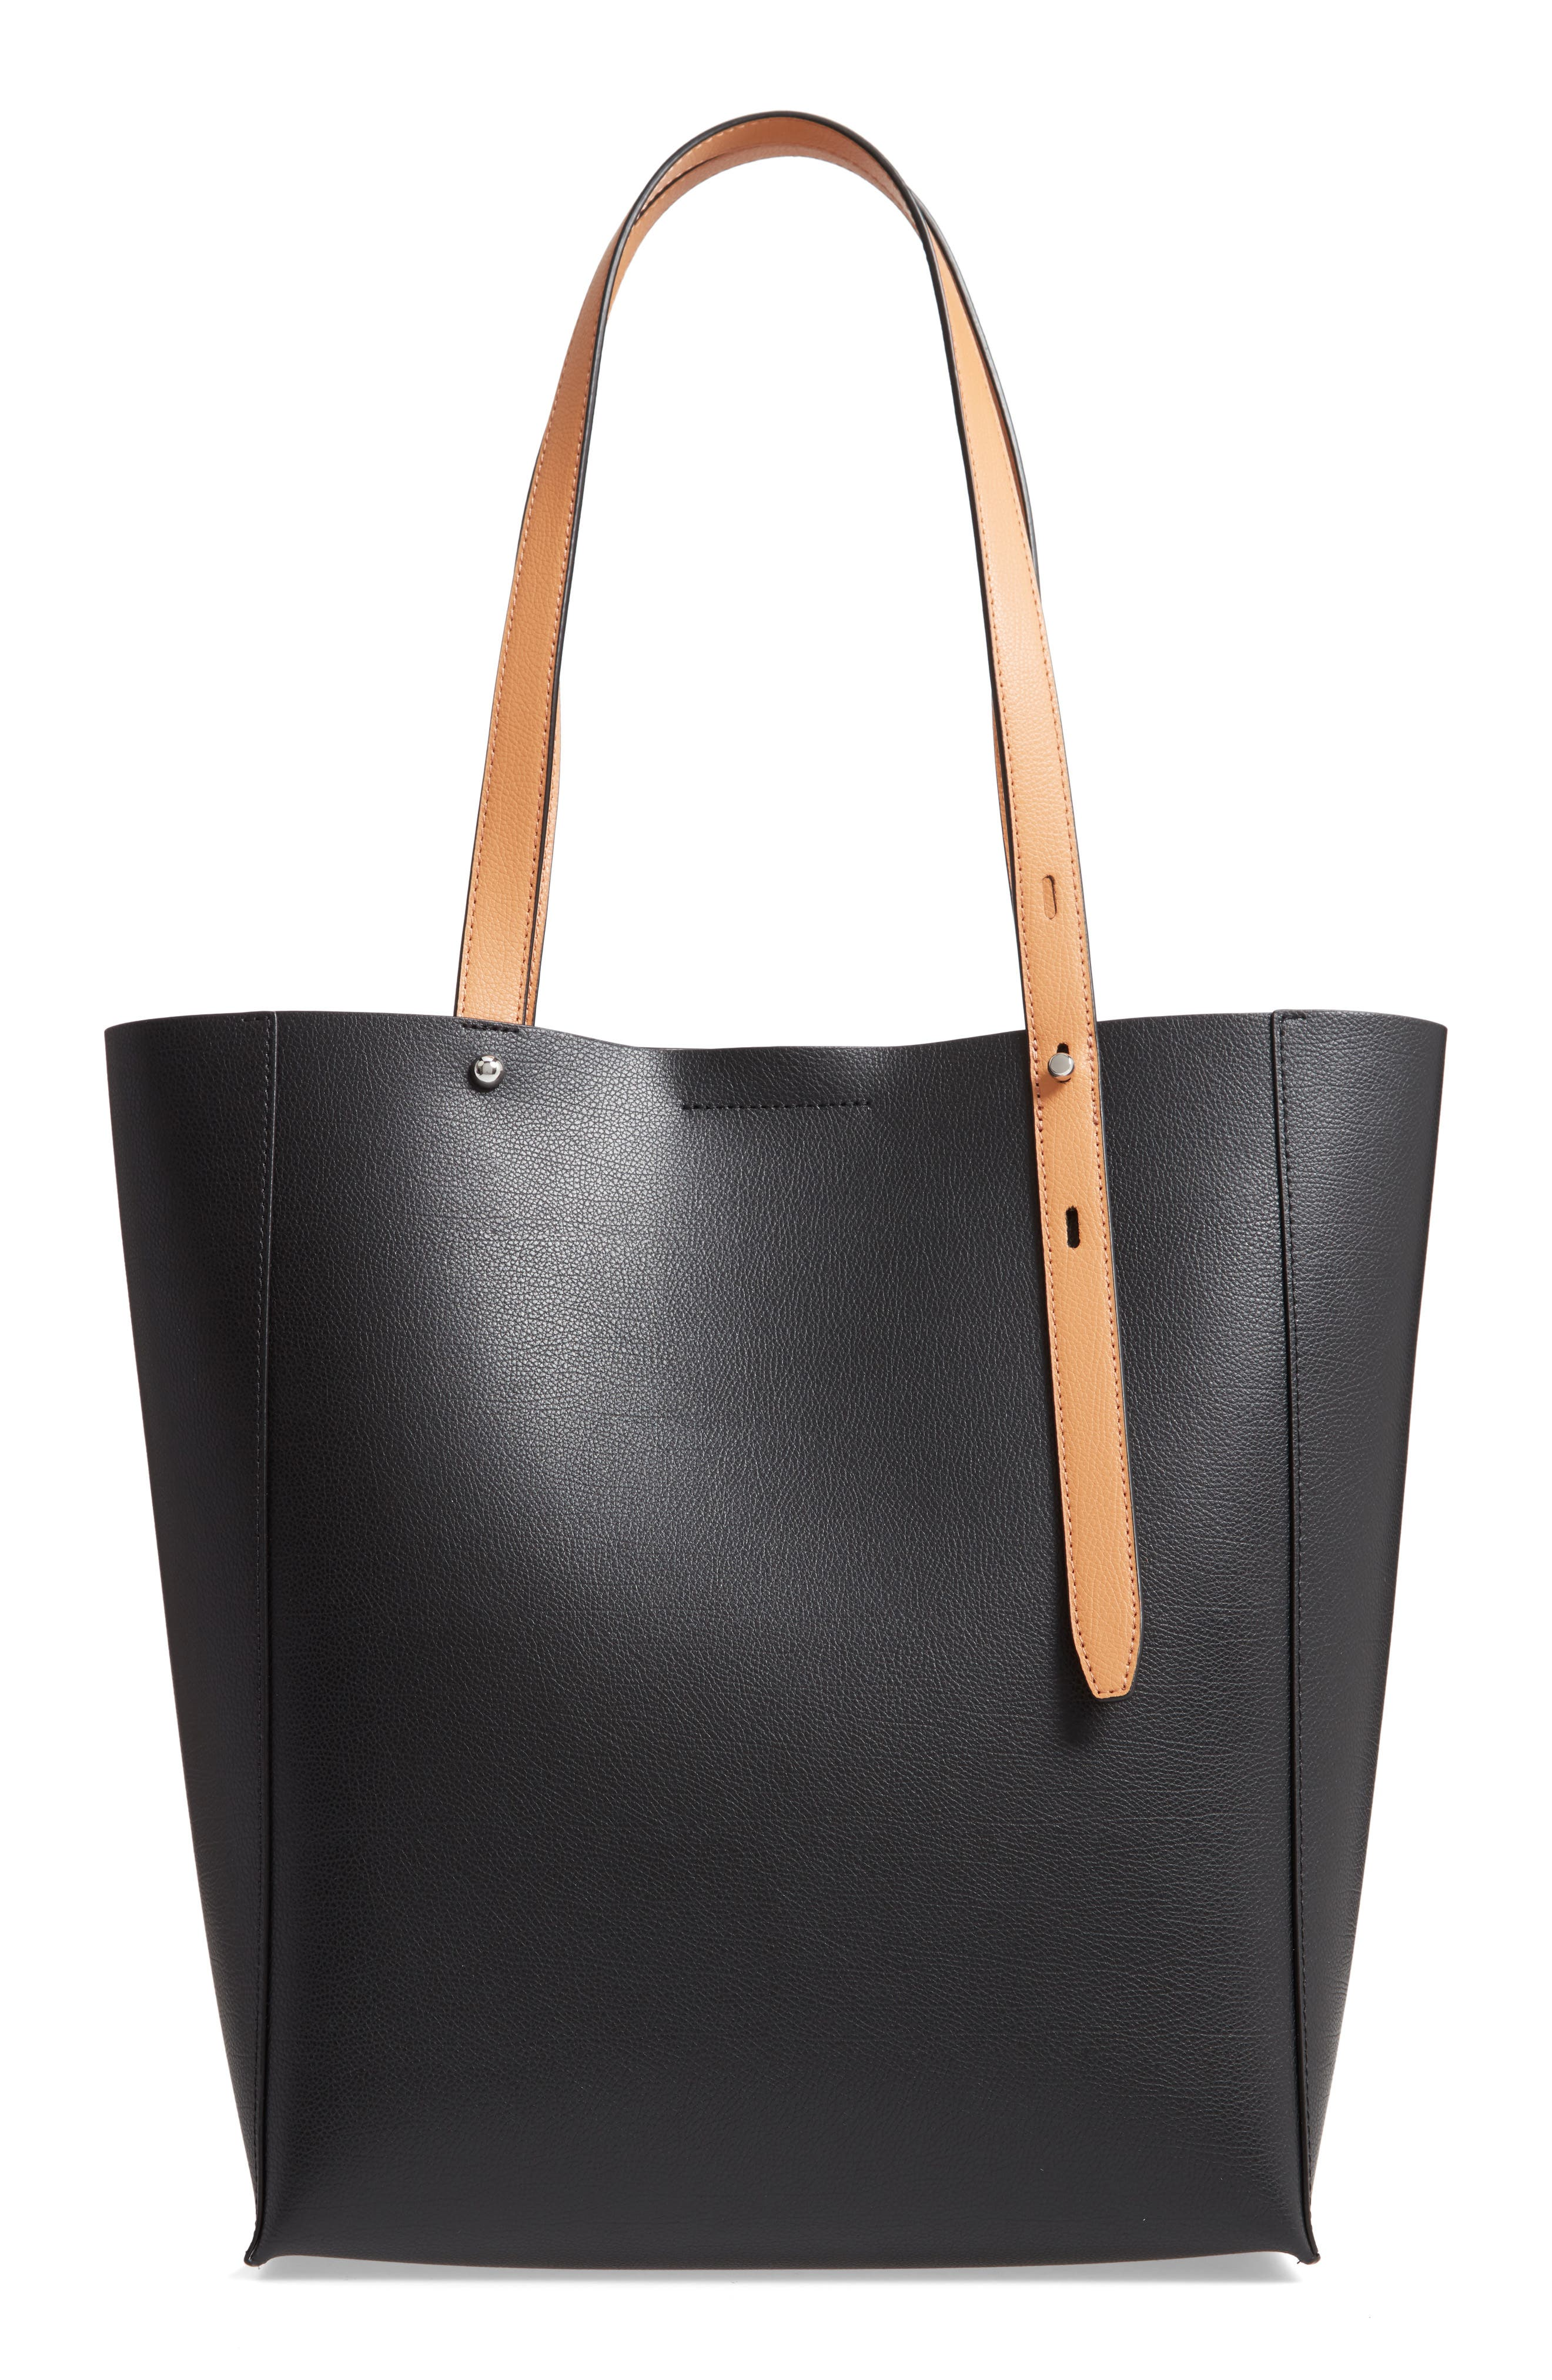 REBECCA MINKOFF, Stella Leather Tote, Main thumbnail 1, color, BLACK/ HONEY